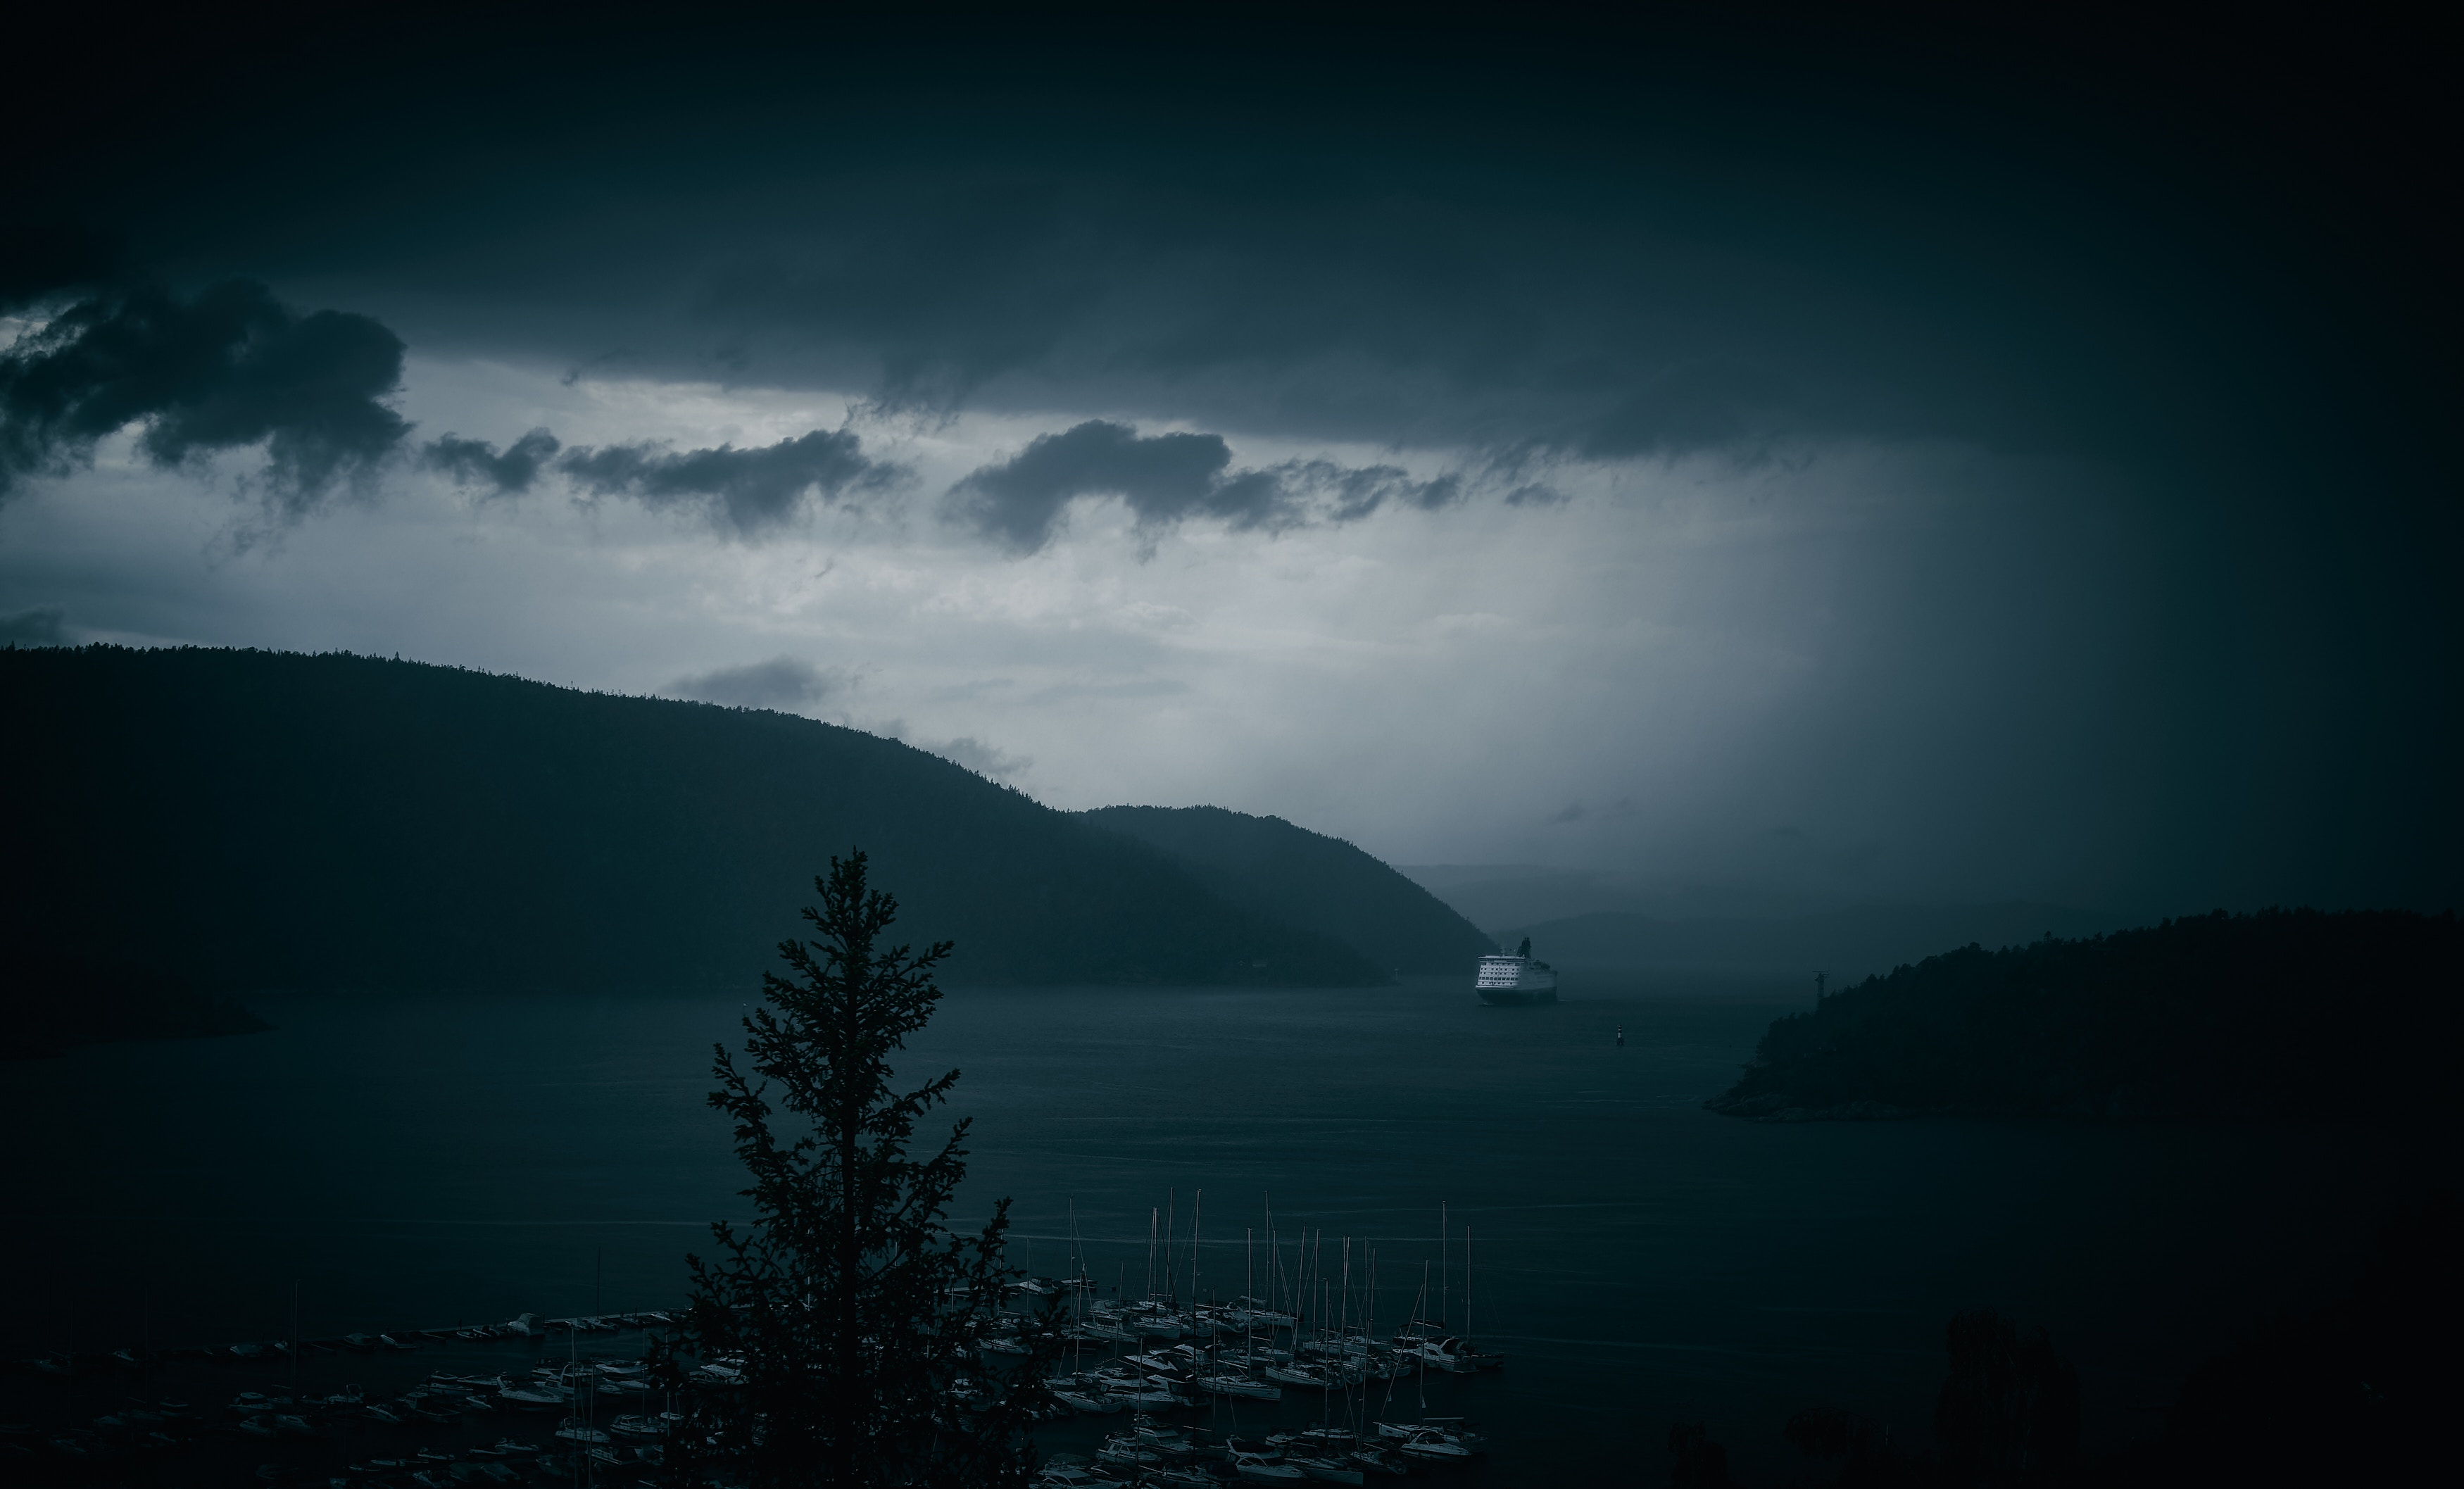 64686 download wallpaper Nature, Bay, Ships, Fog, Sea, Port, Dark screensavers and pictures for free